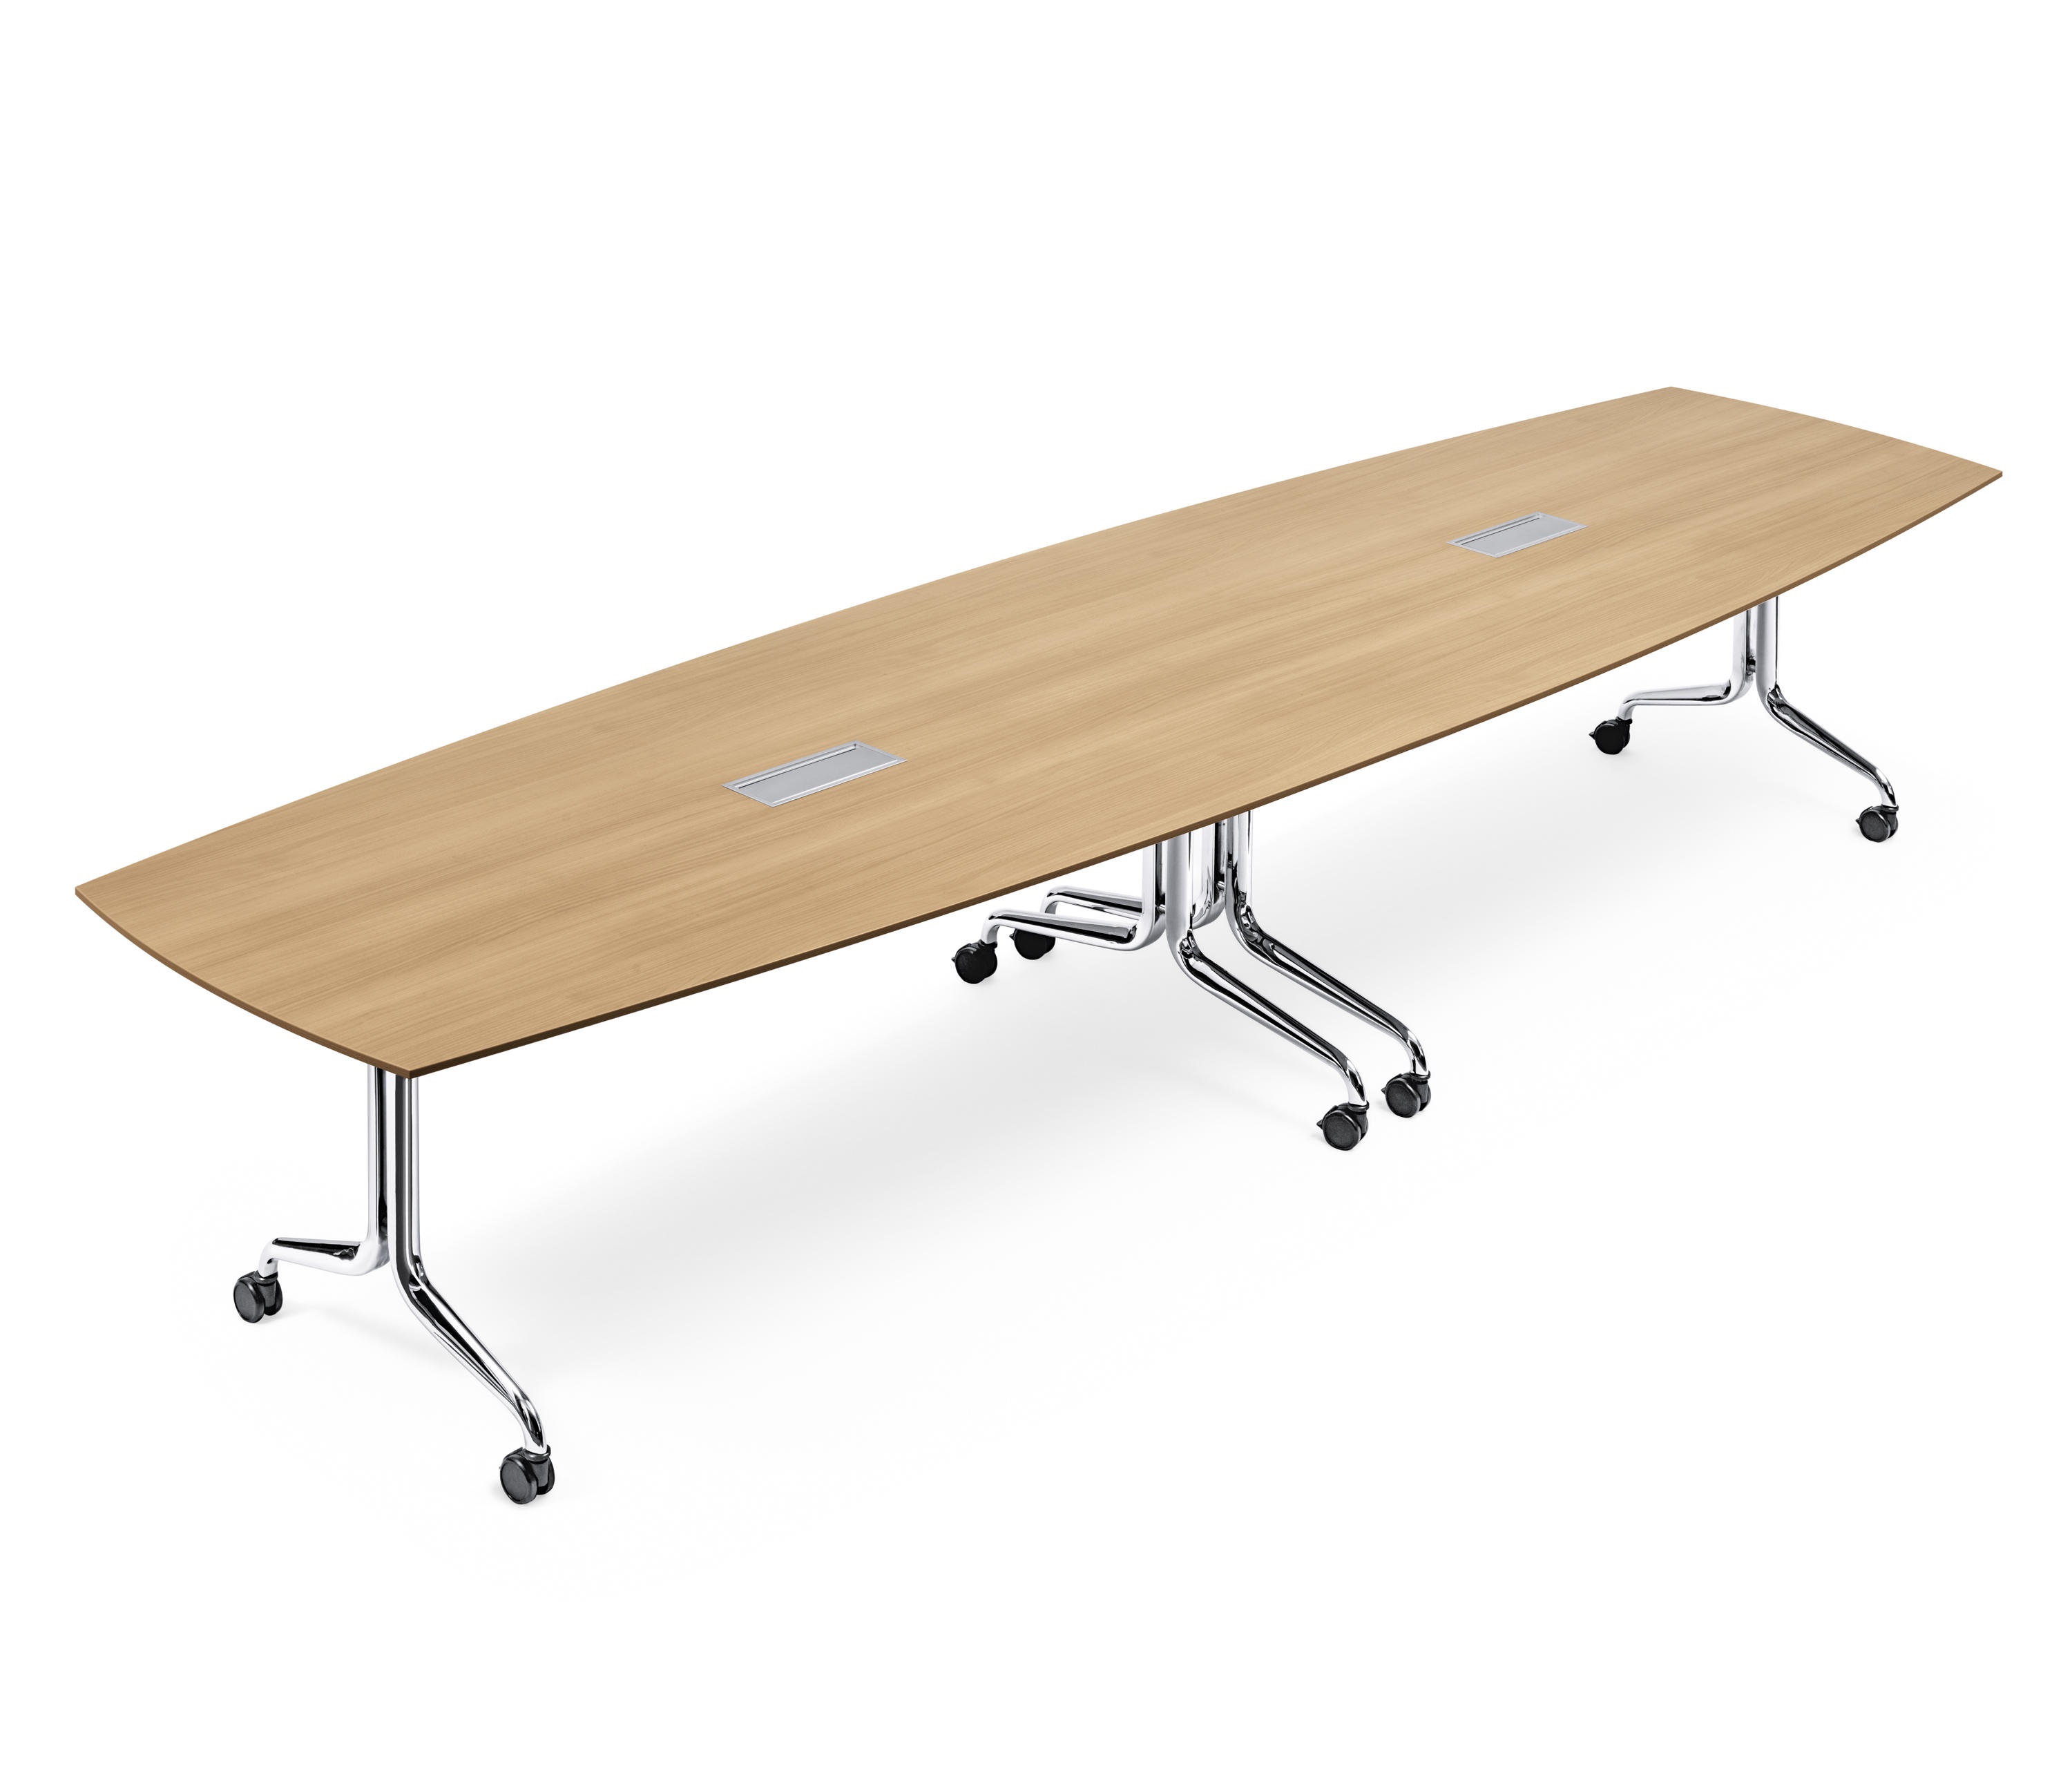 NESTYIS3 - Multipurpose tables from Interstuhl Büromöbel GmbH & Co ...